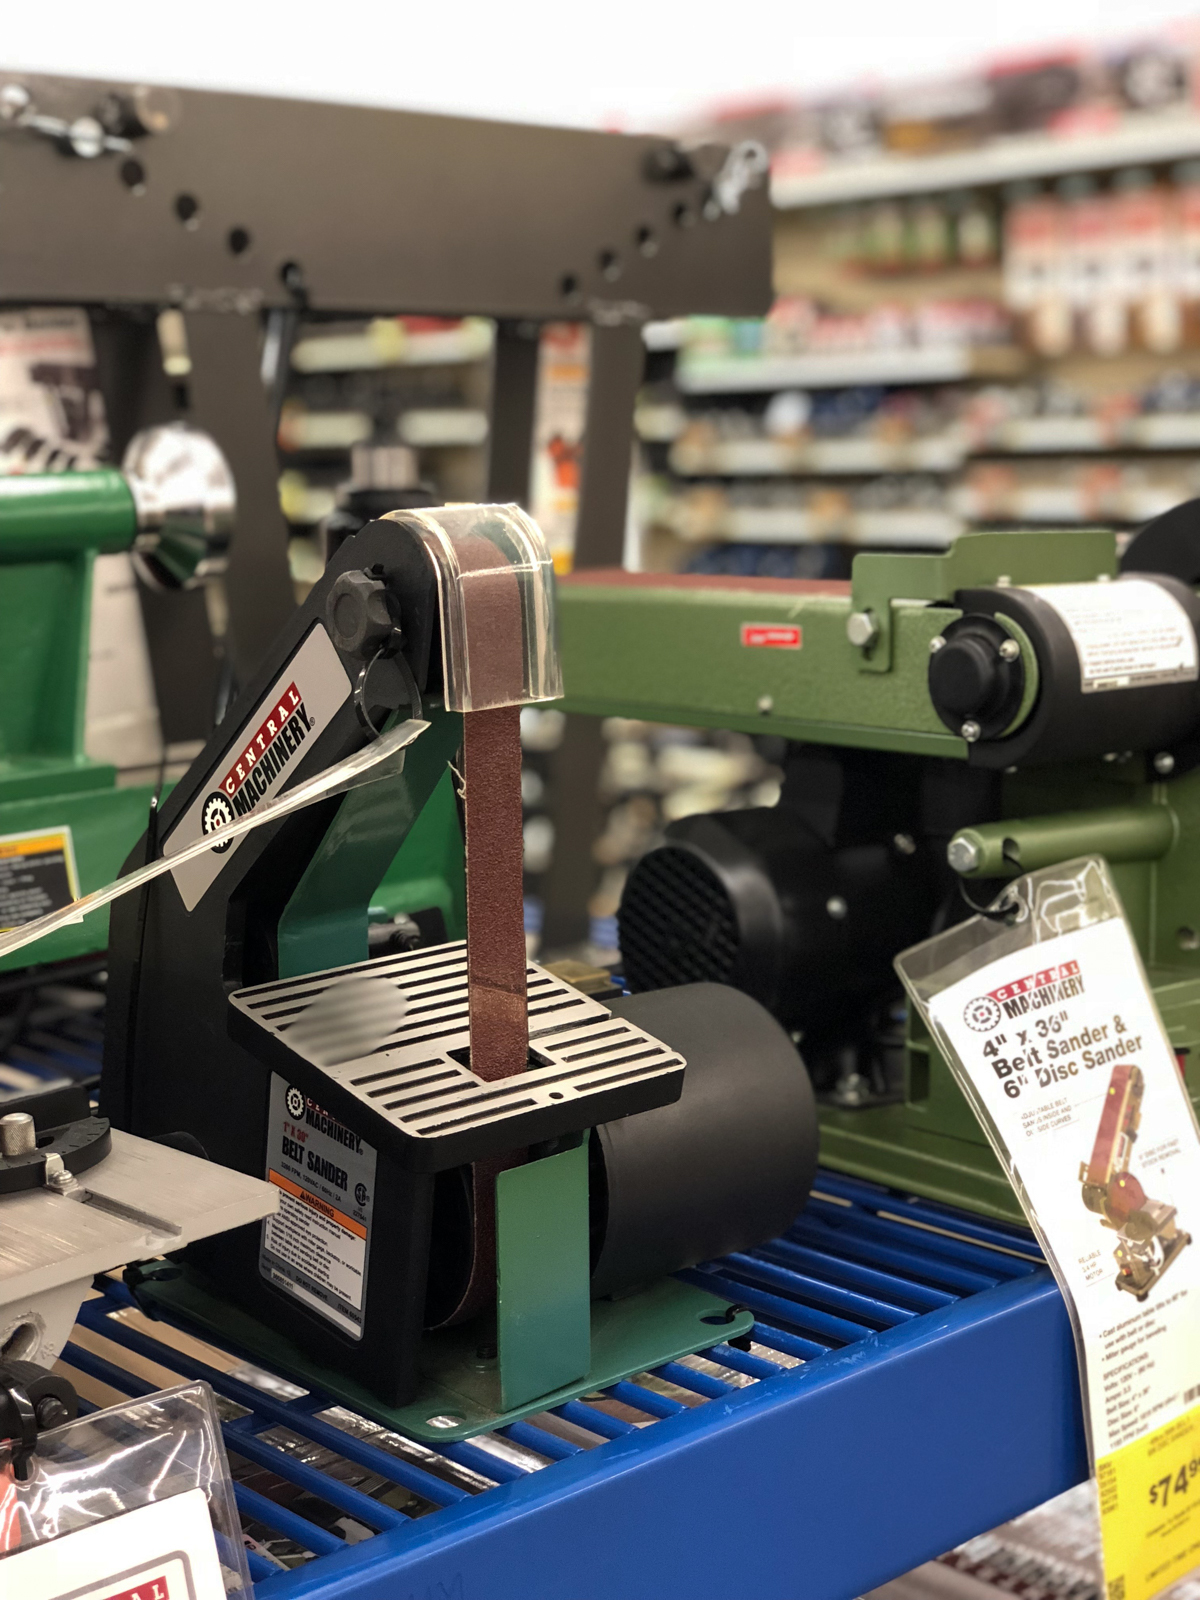 11 Surprisingly Good Finds You Should Buy at Harbor Freight